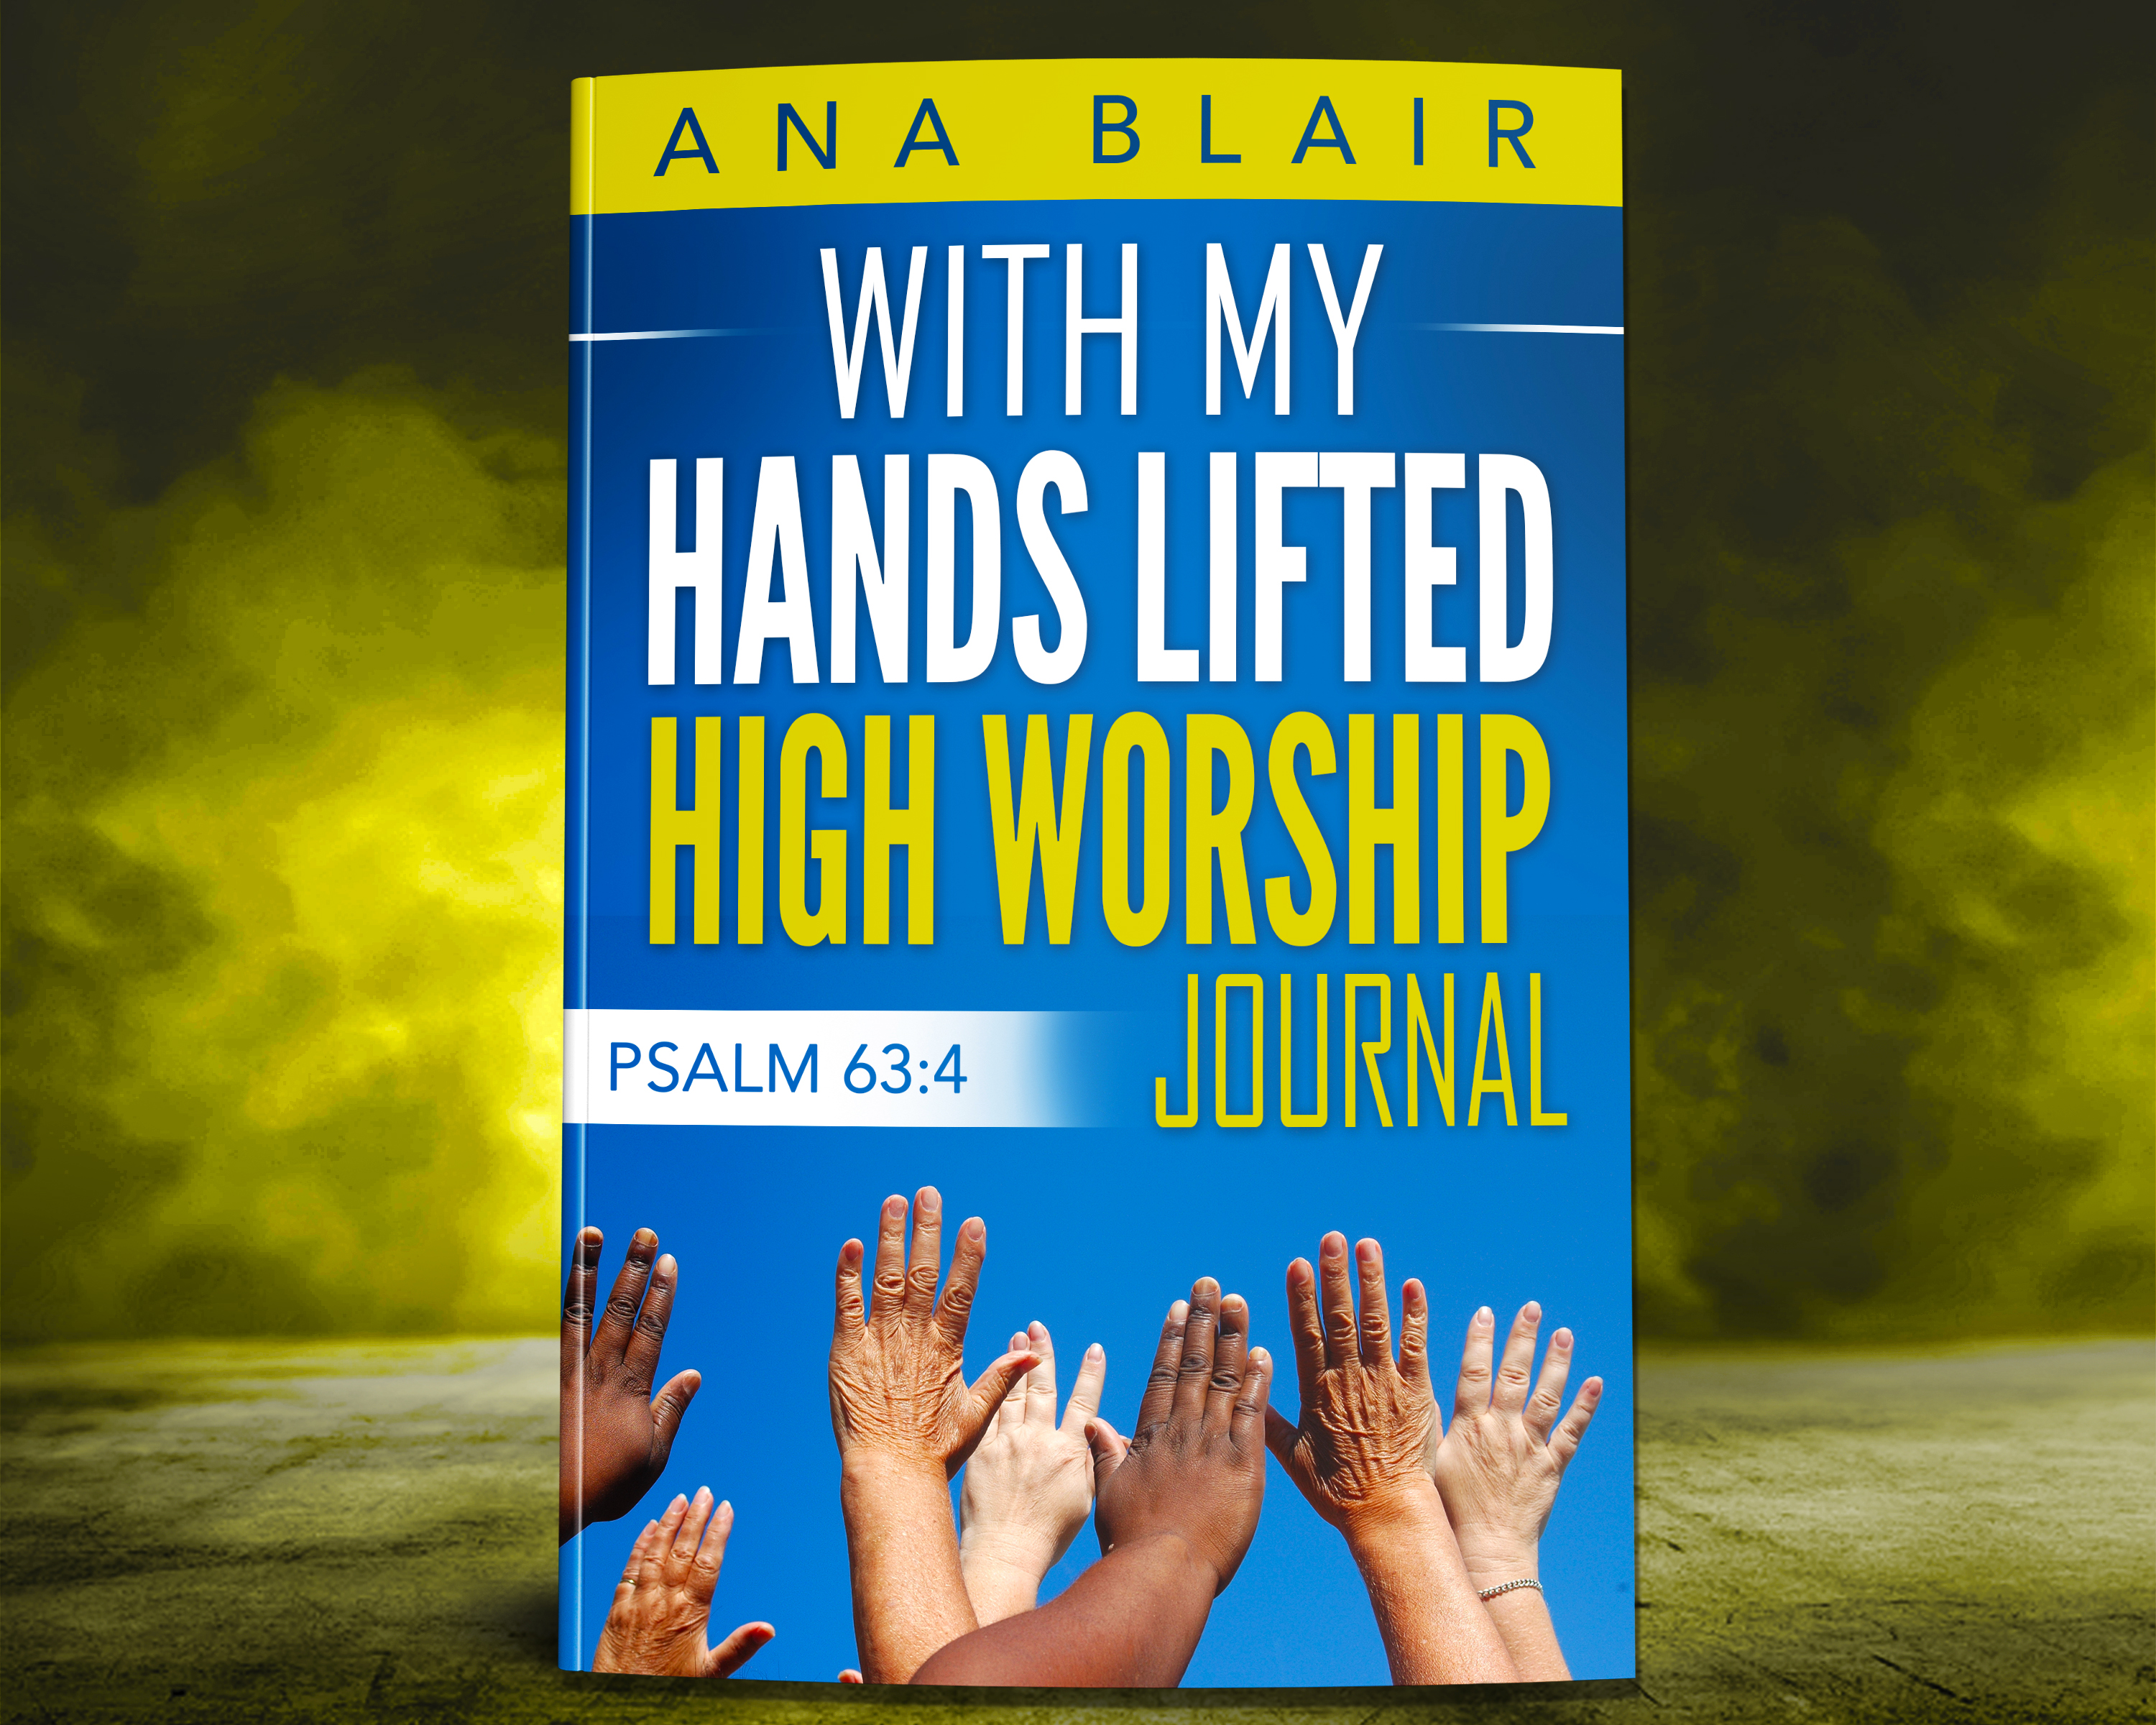 With My Hands Lifted High Worship Journal